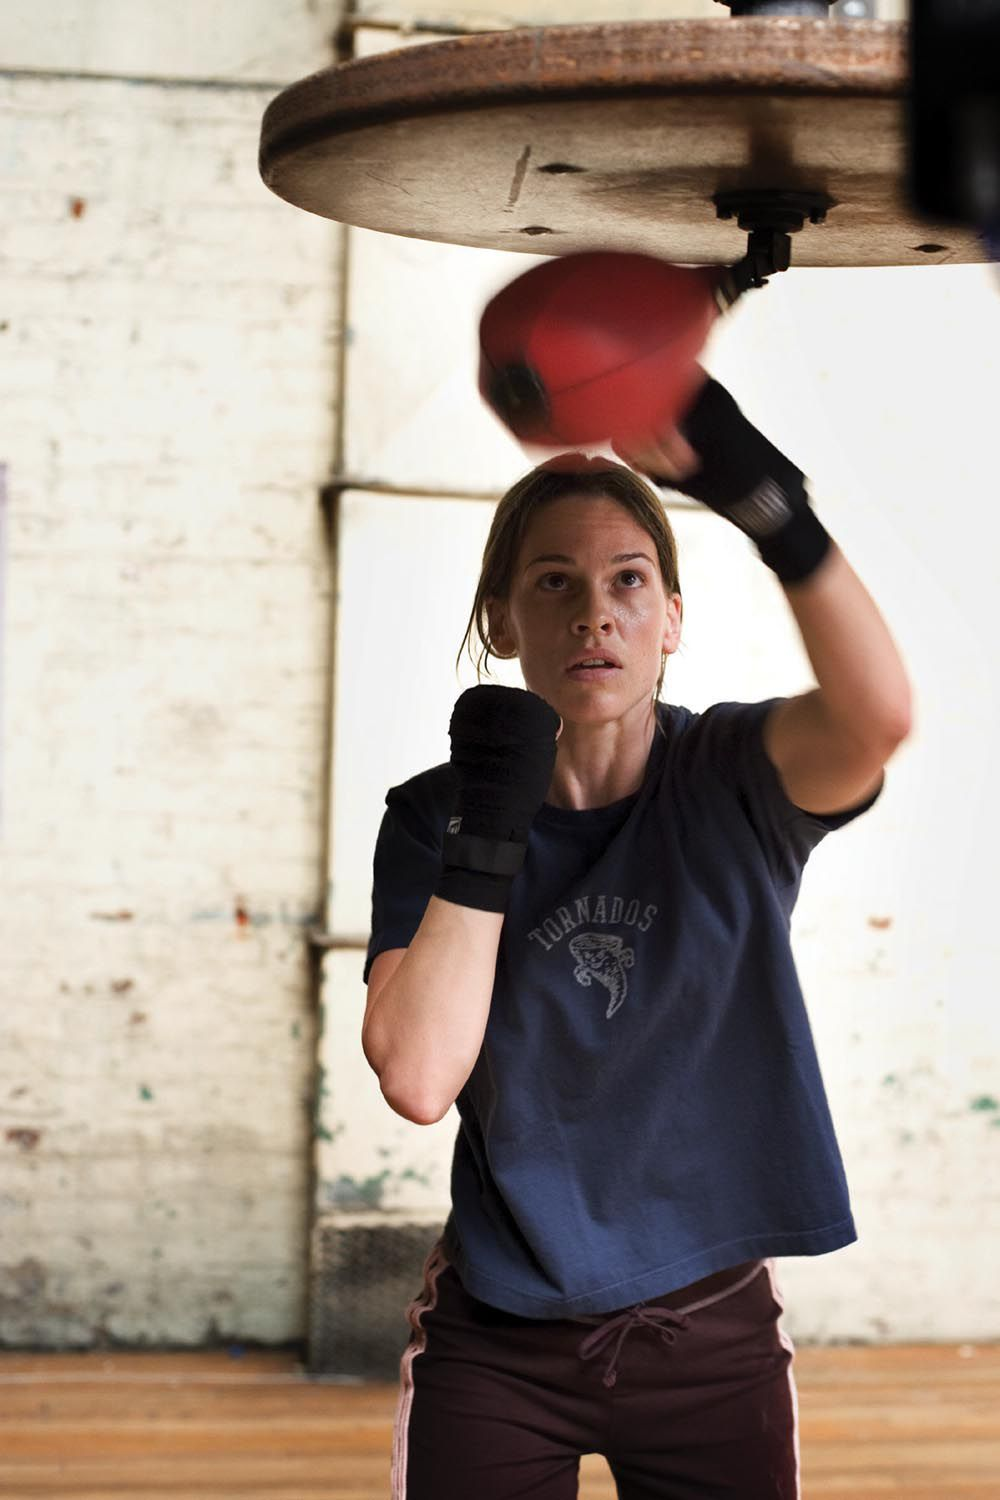 """Net als Hilary Swank in 'Million Dollar Baby' je biceps trainen HILARY SWANK as Maggie in Warner Bros. Pictures' drama """"Million Dollar Baby."""" The Malpaso production also stars Clint Eastwood and Morgan Freeman. PHOTOGRAPHS TO BE USED SOLELY FOR ADVERTISING, PROMOTION, PUBLICITY OR REVIEWS OF THIS SPECIFIC MOTION PICTURE AND TO REMAIN THE PROPERTY OF THE STUDIO. NOT FOR SALE OR REDISTRIBUTION."""